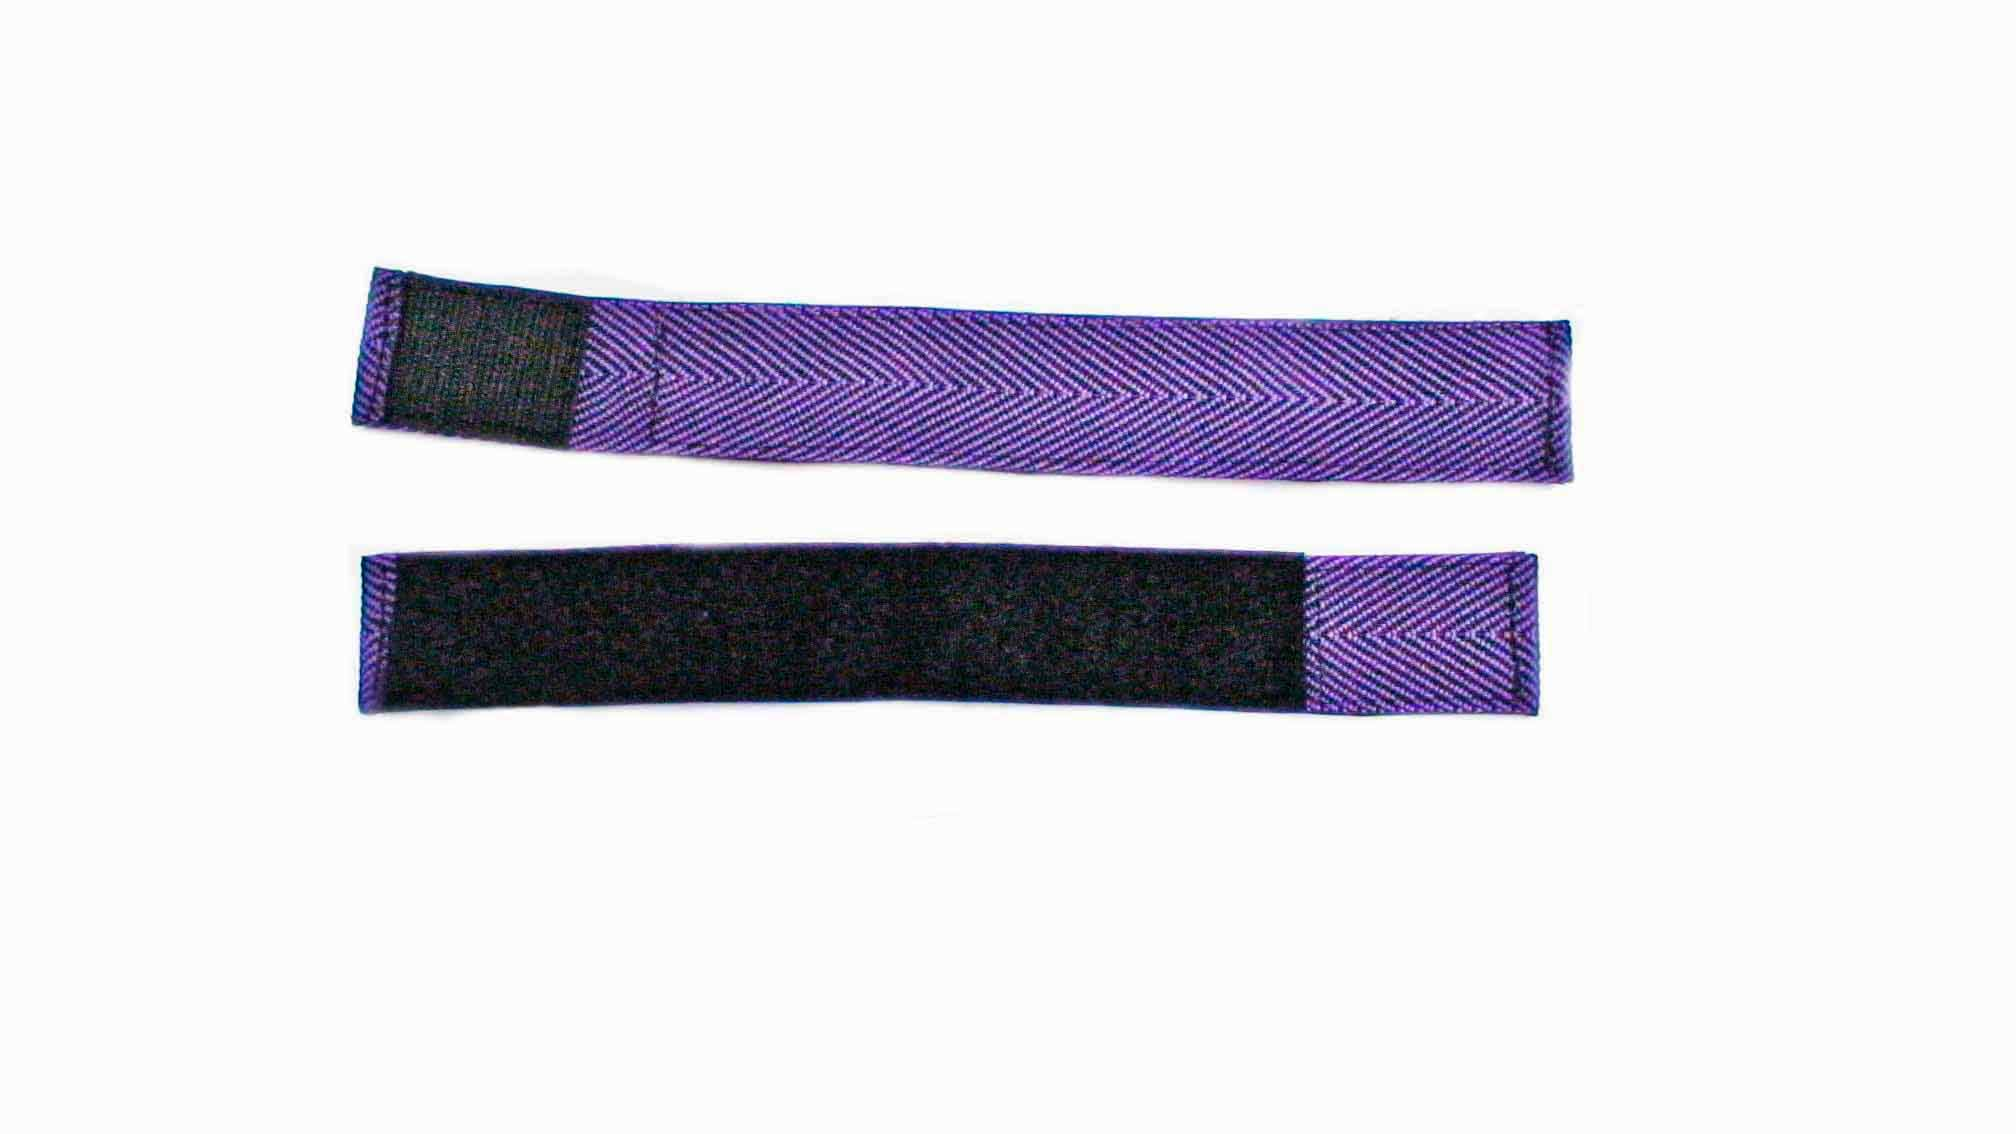 Extension Straps for Wrap Pad AHWAEXT